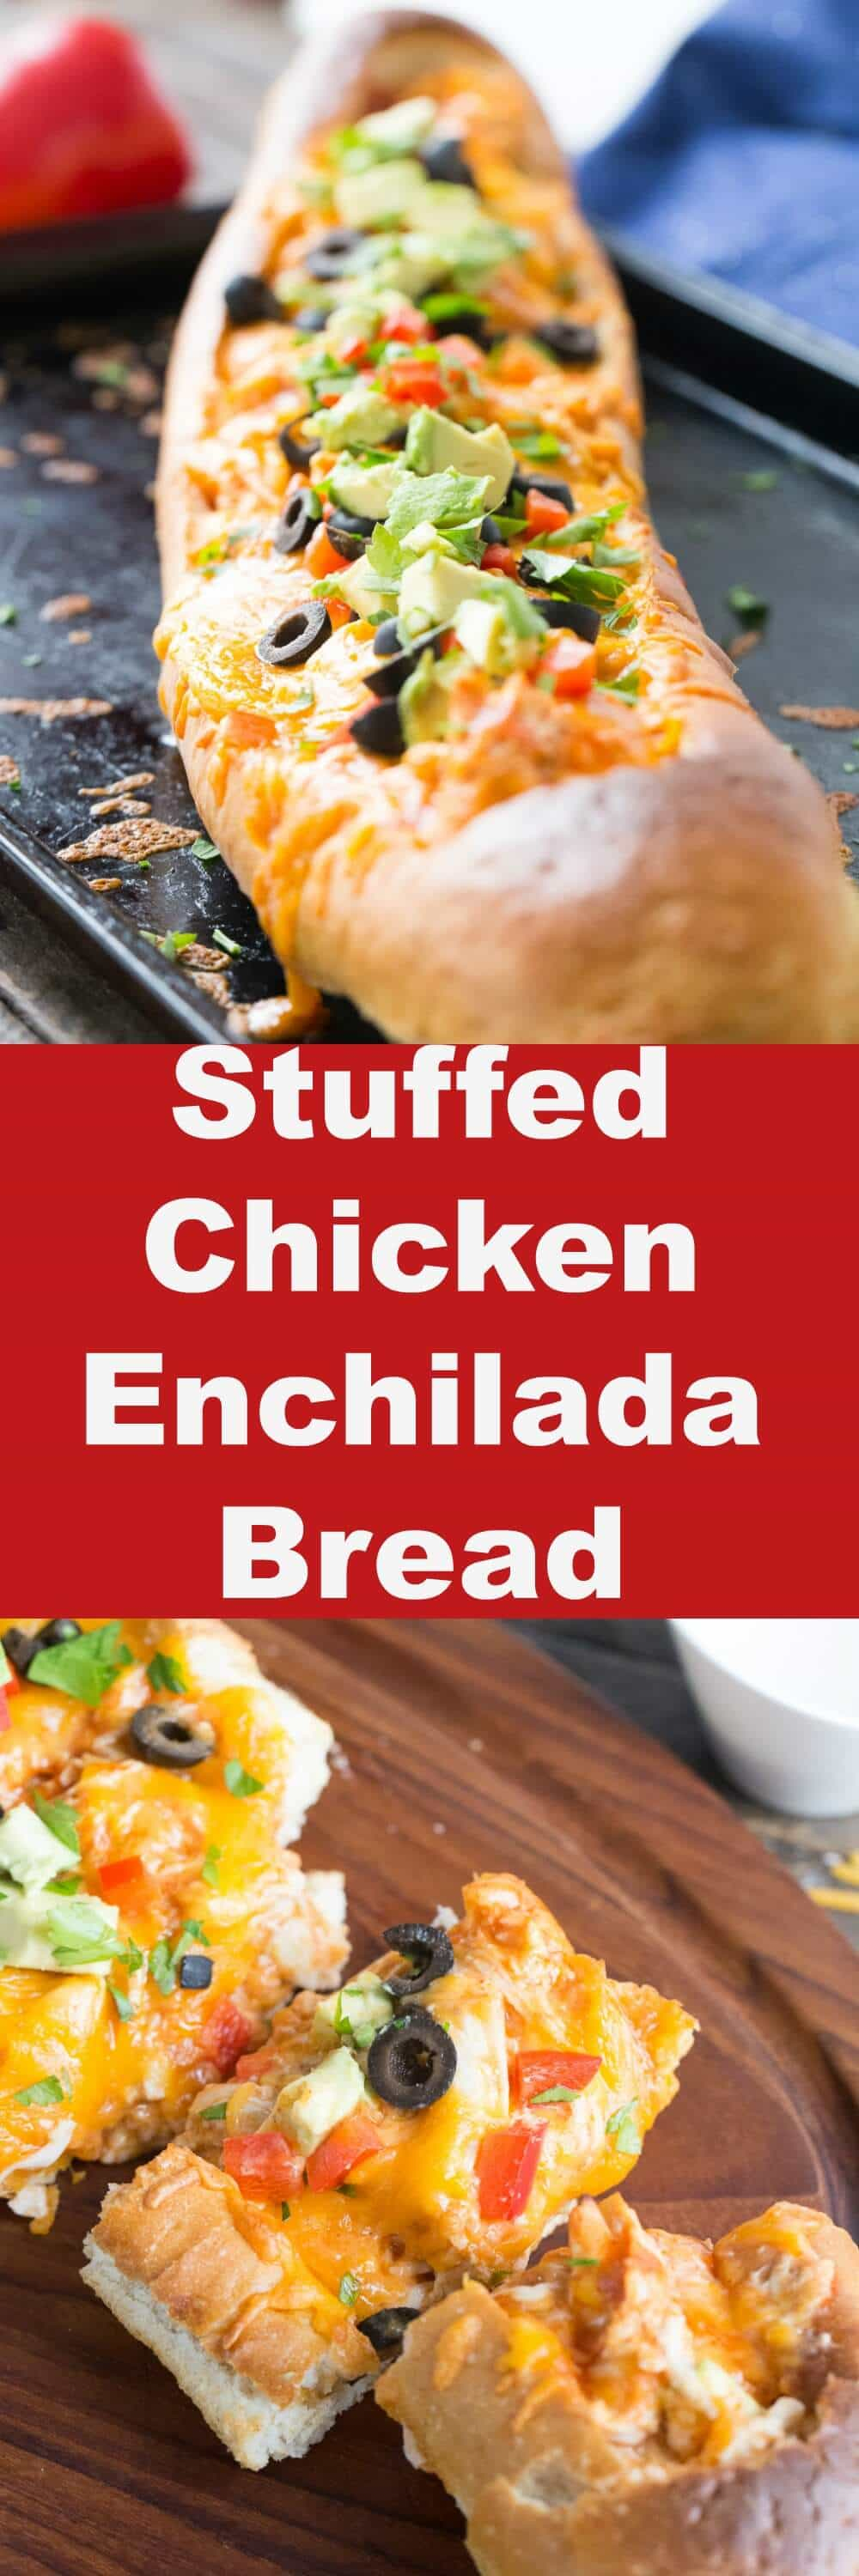 Chicken enchiladas are stuffed inside a loaf of French bread then baked until golden. Top your enchilada bread with your favorite ingredients and then gobble it up!